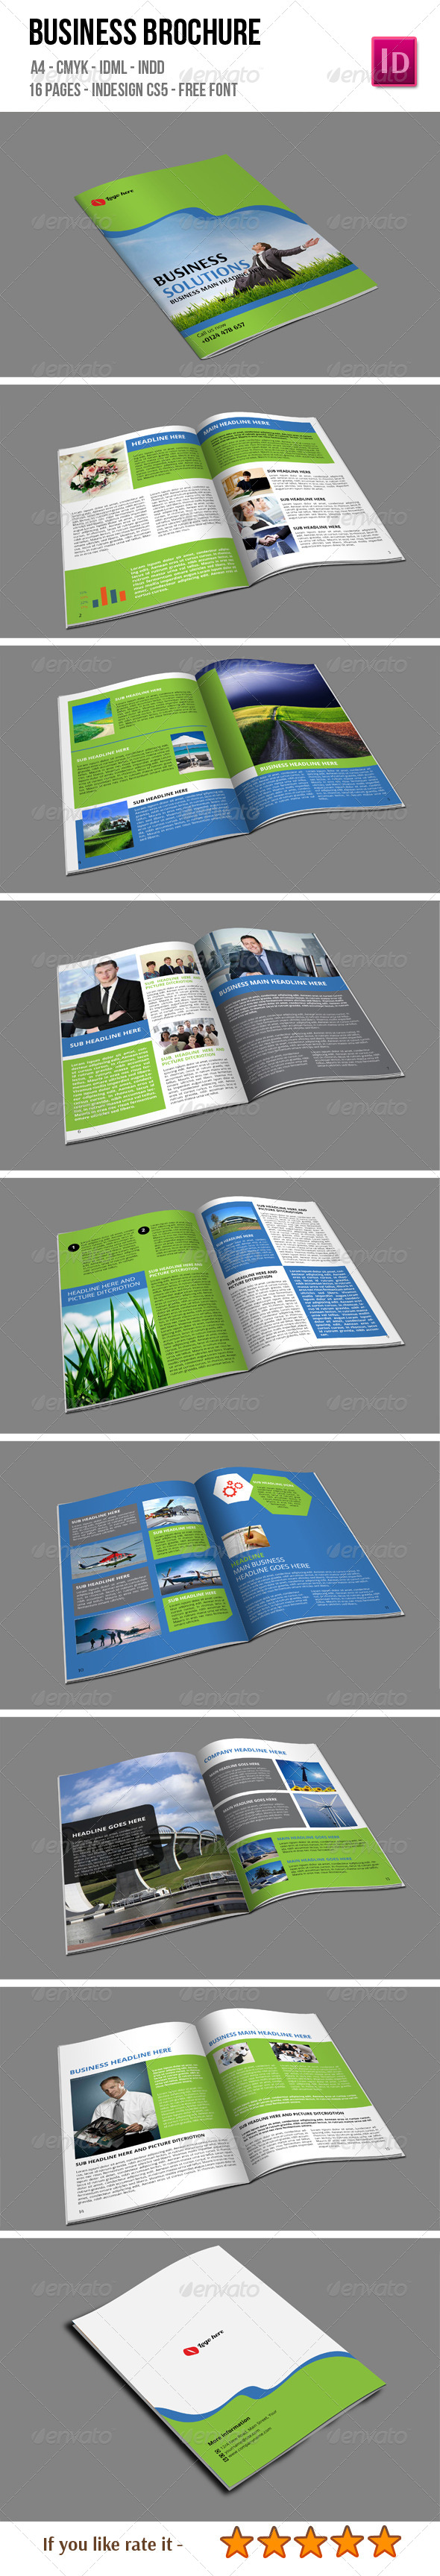 16 Pages Business Brochure - Corporate Brochures